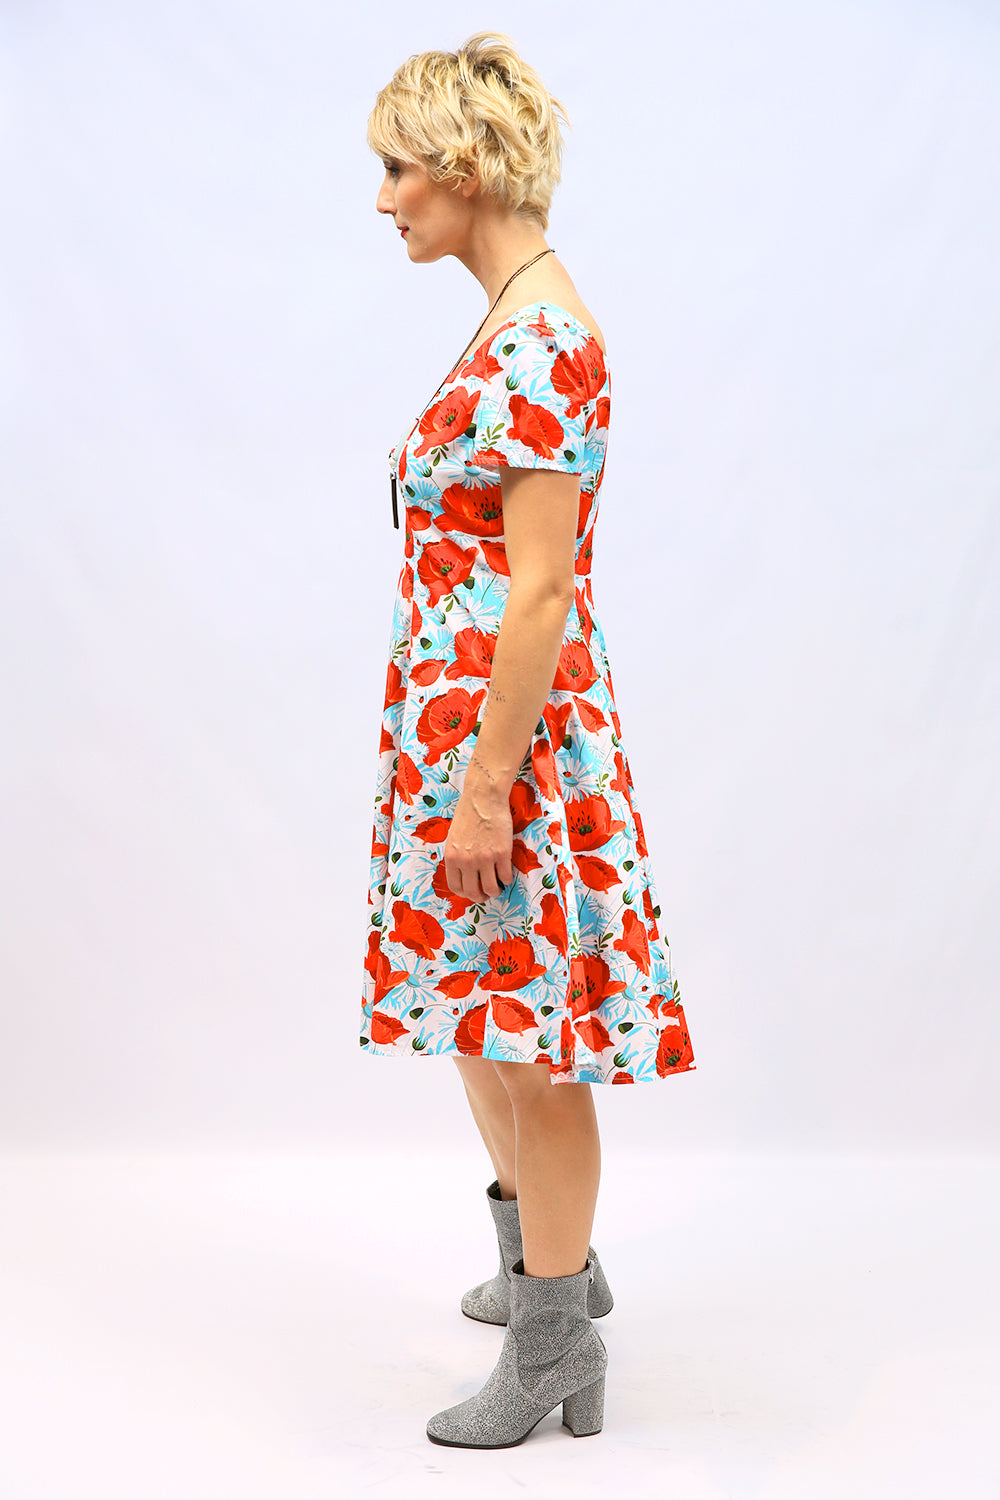 Virginia Alex Dress